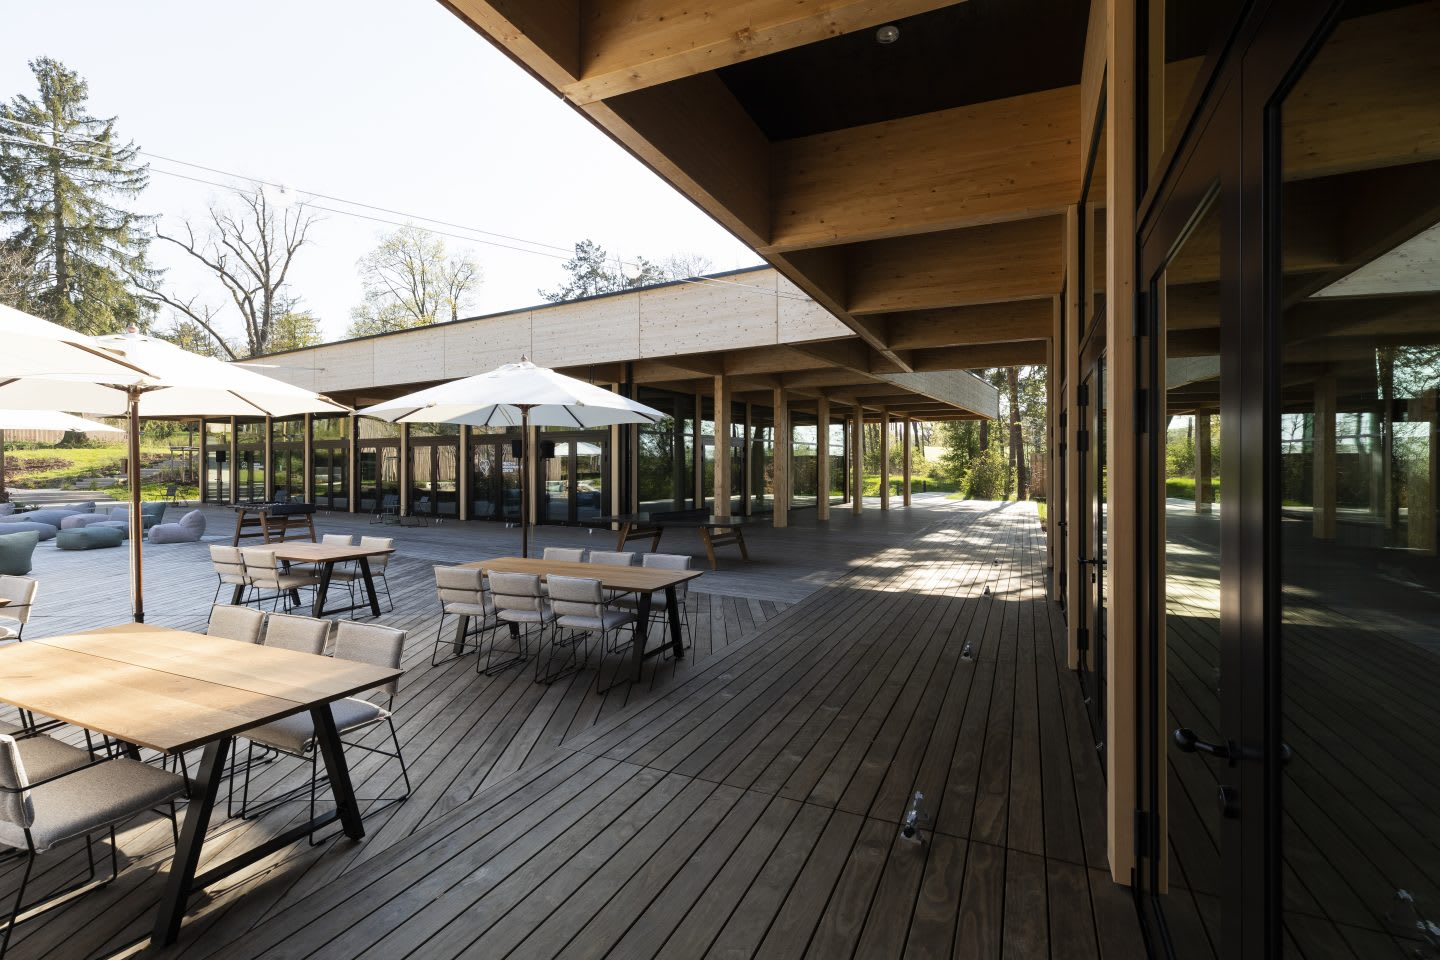 The outdoor seating area of the base camp of the Germany national football team. Home Ground, football, teamwork, adidas headquarters, GamePlan A.